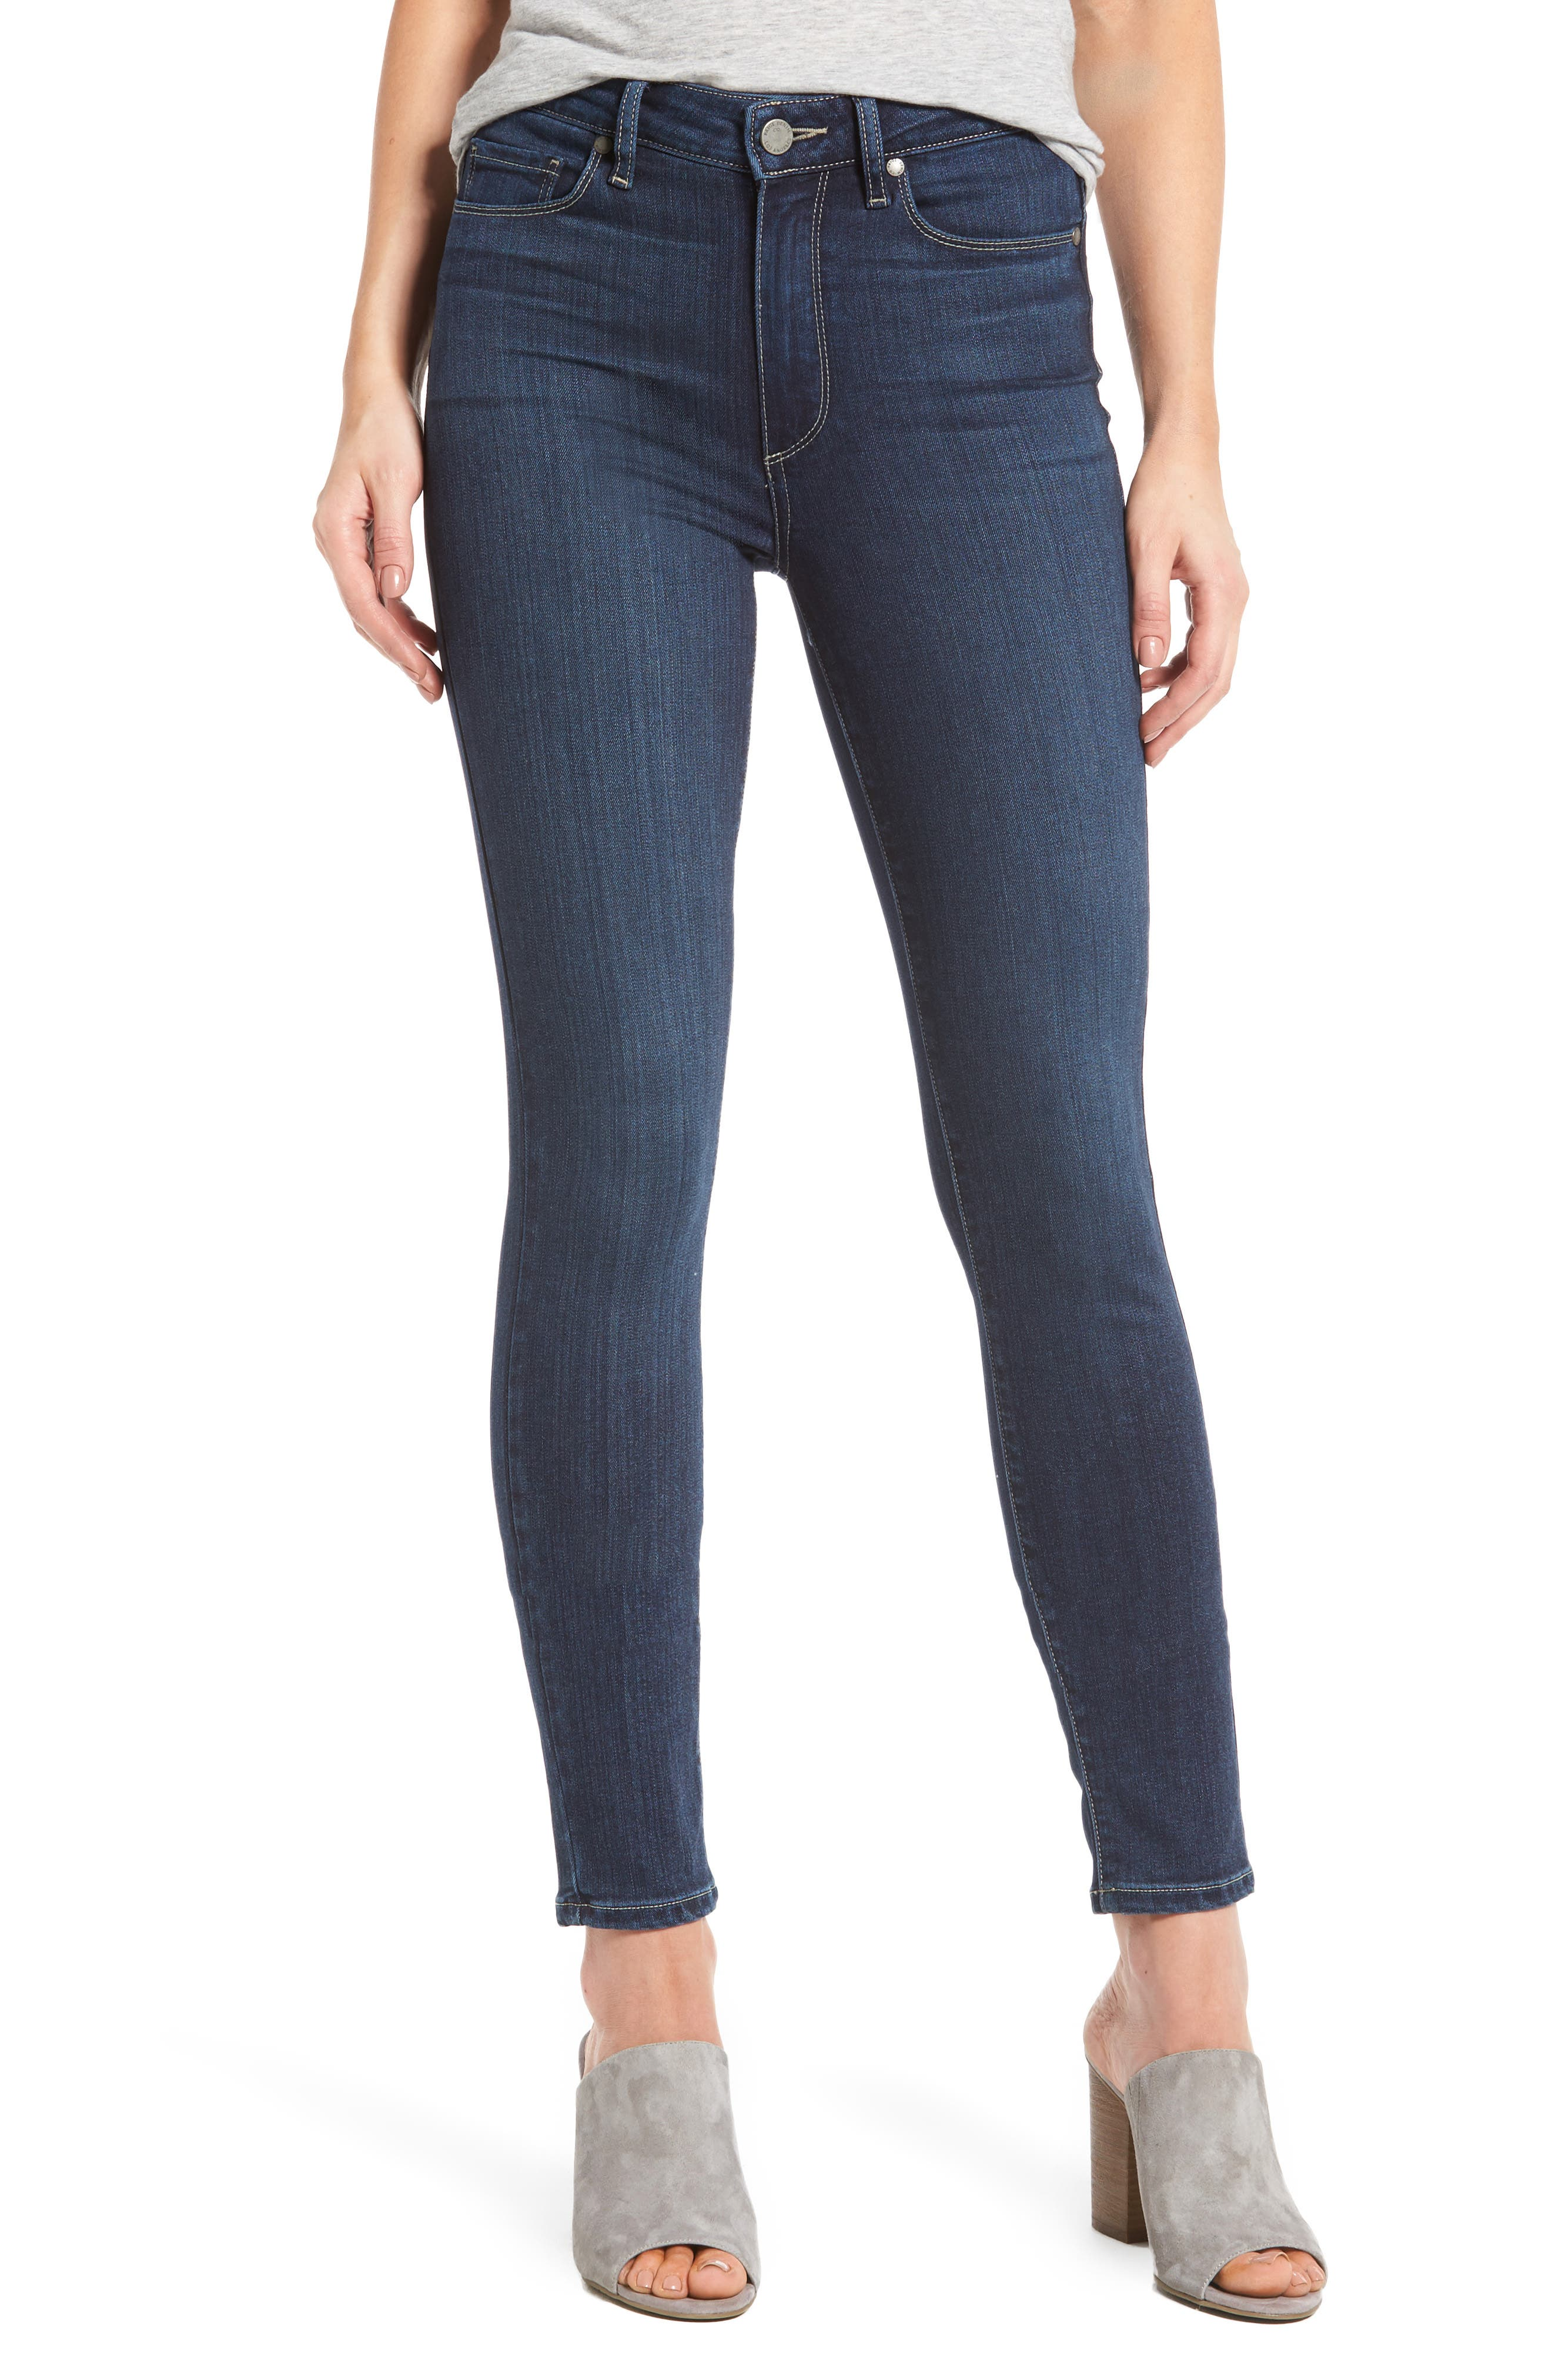 Alternate Image 1 Selected - PAIGE Hoxton High Waist Ankle Skinny Jeans (Charing)